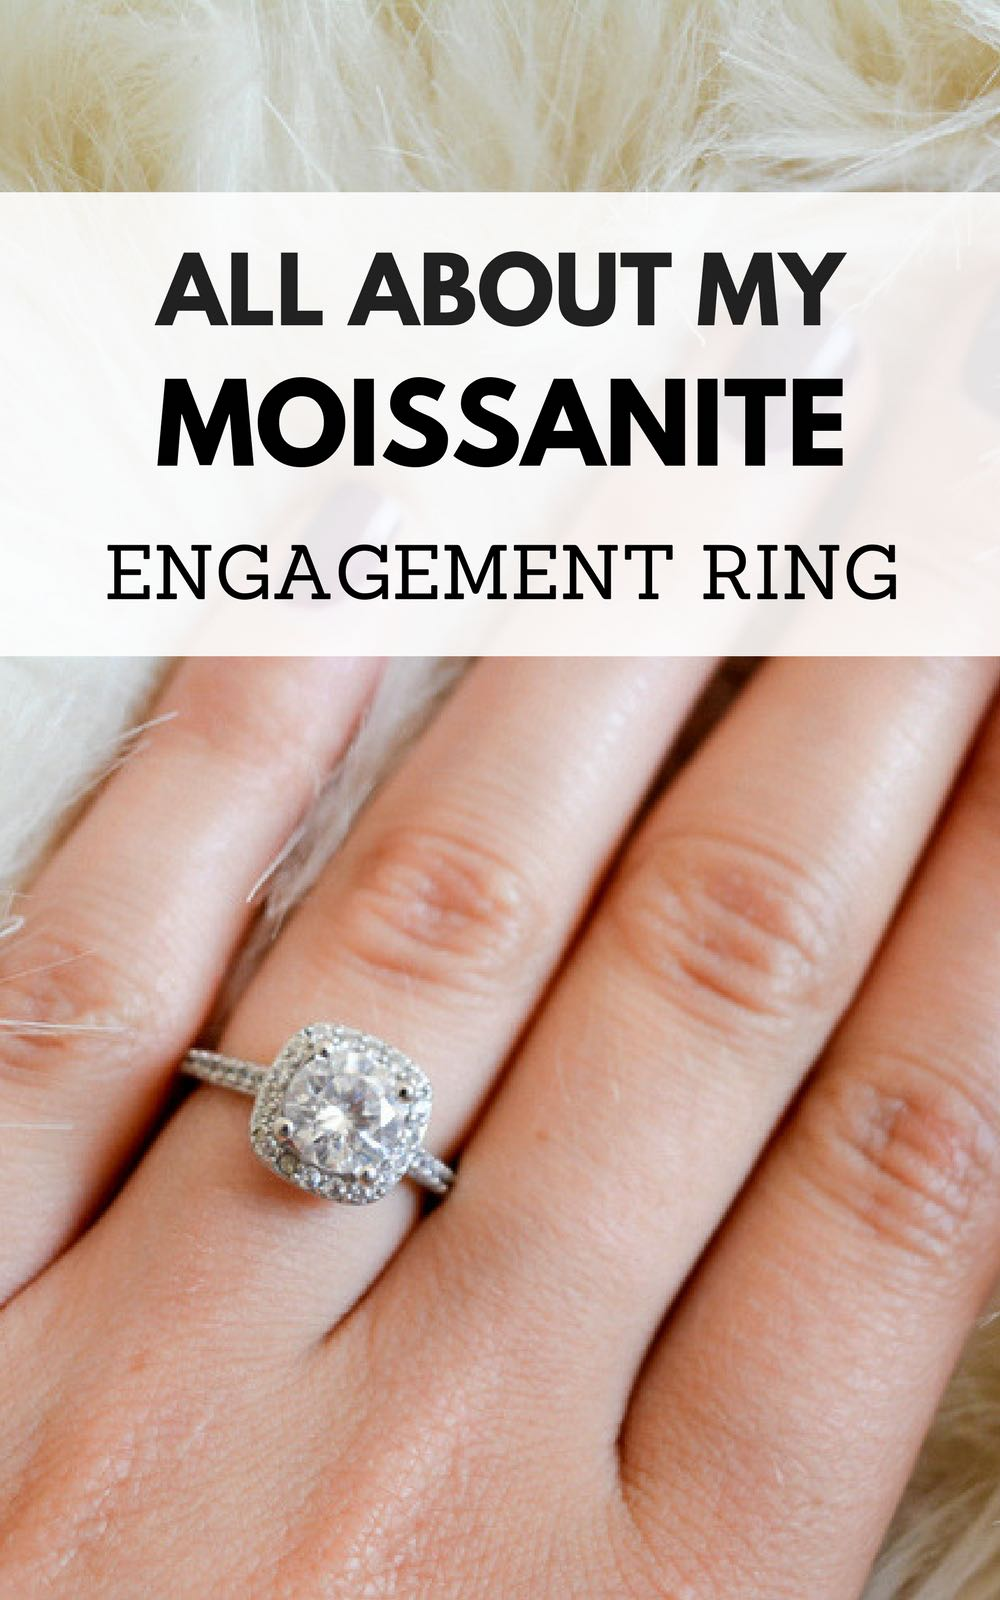 a4cf49acc371 What it's like having a moissanite engagement ring | moissanite |  moissanite vs diamond. ""